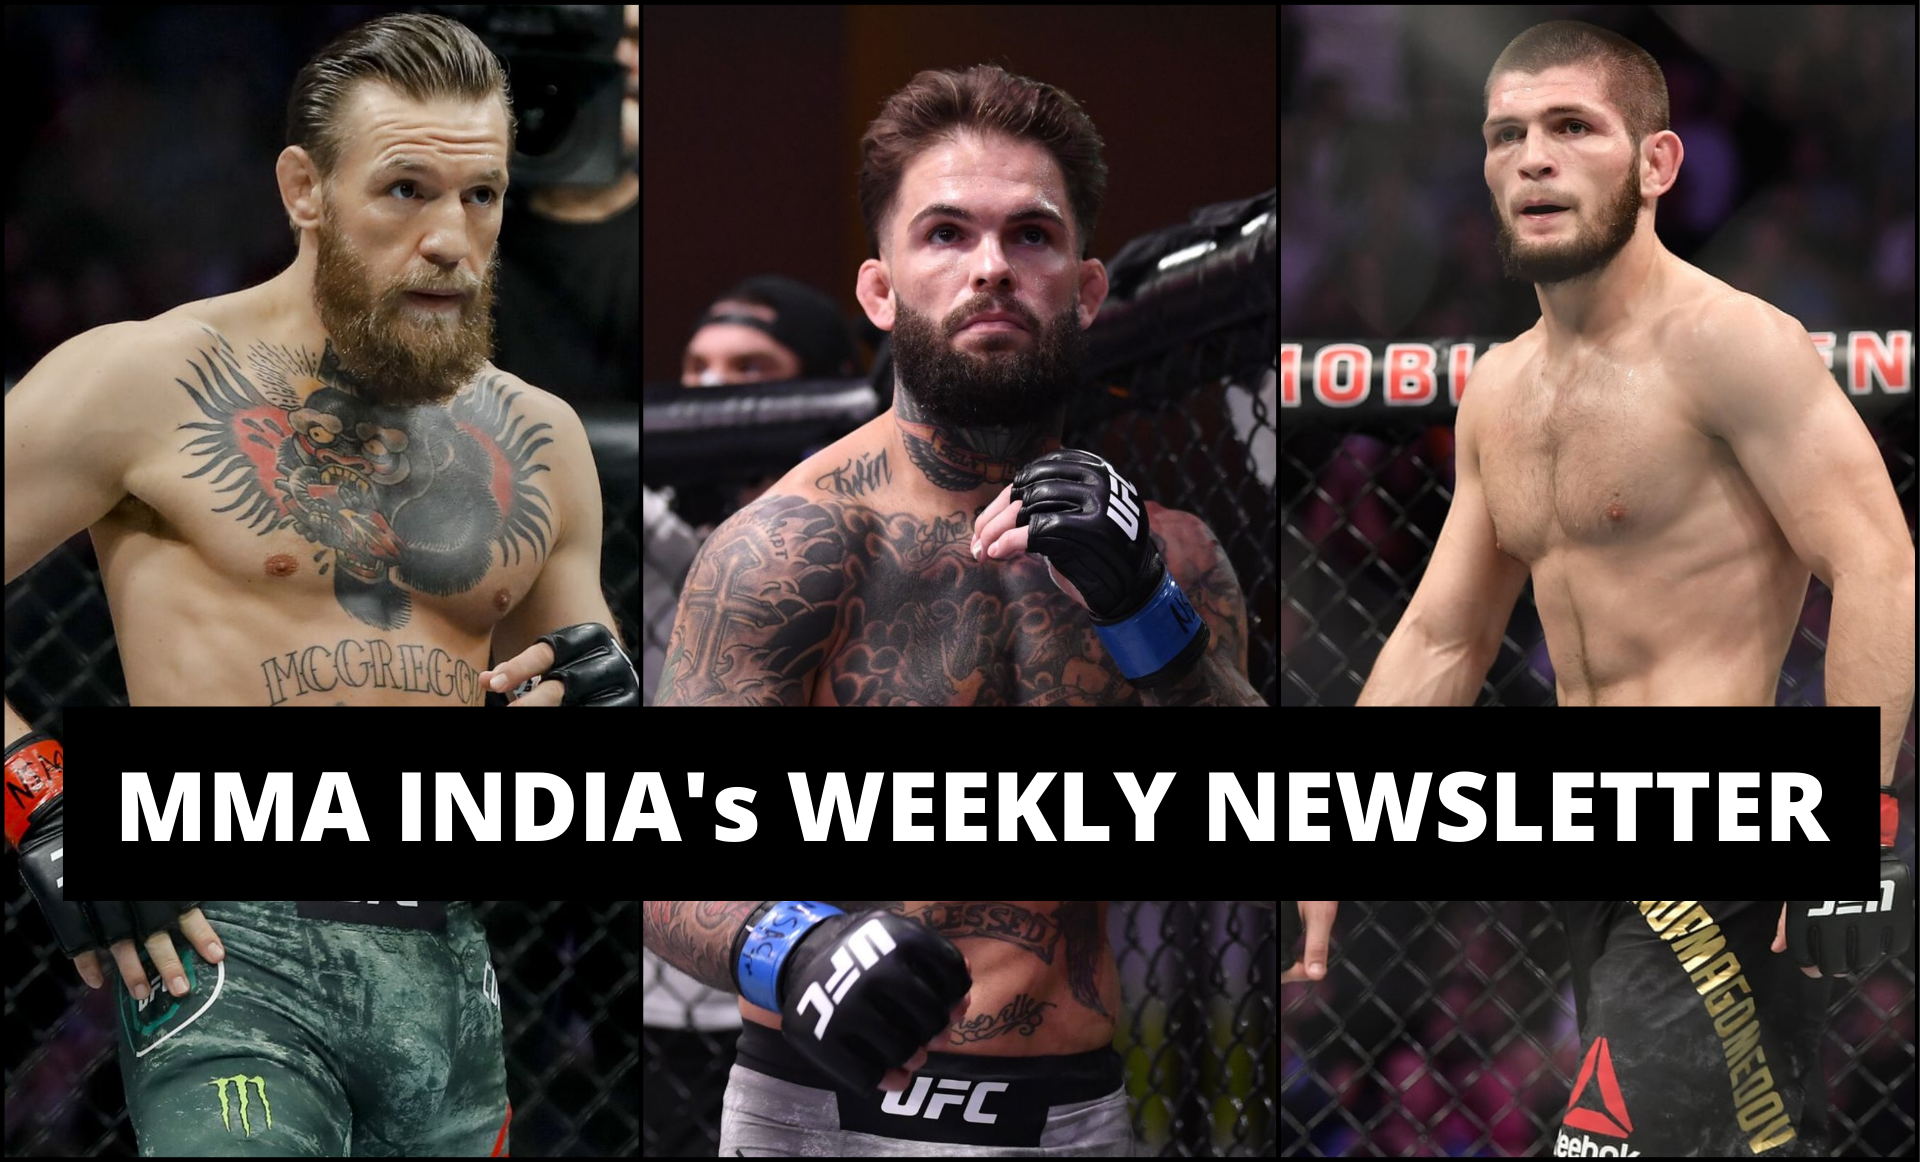 MMA India's Weekly Roundup (4 Aug - 10 Aug): Conor McGregor to Olympics? Khabib won't train at AKA and more - McGregor